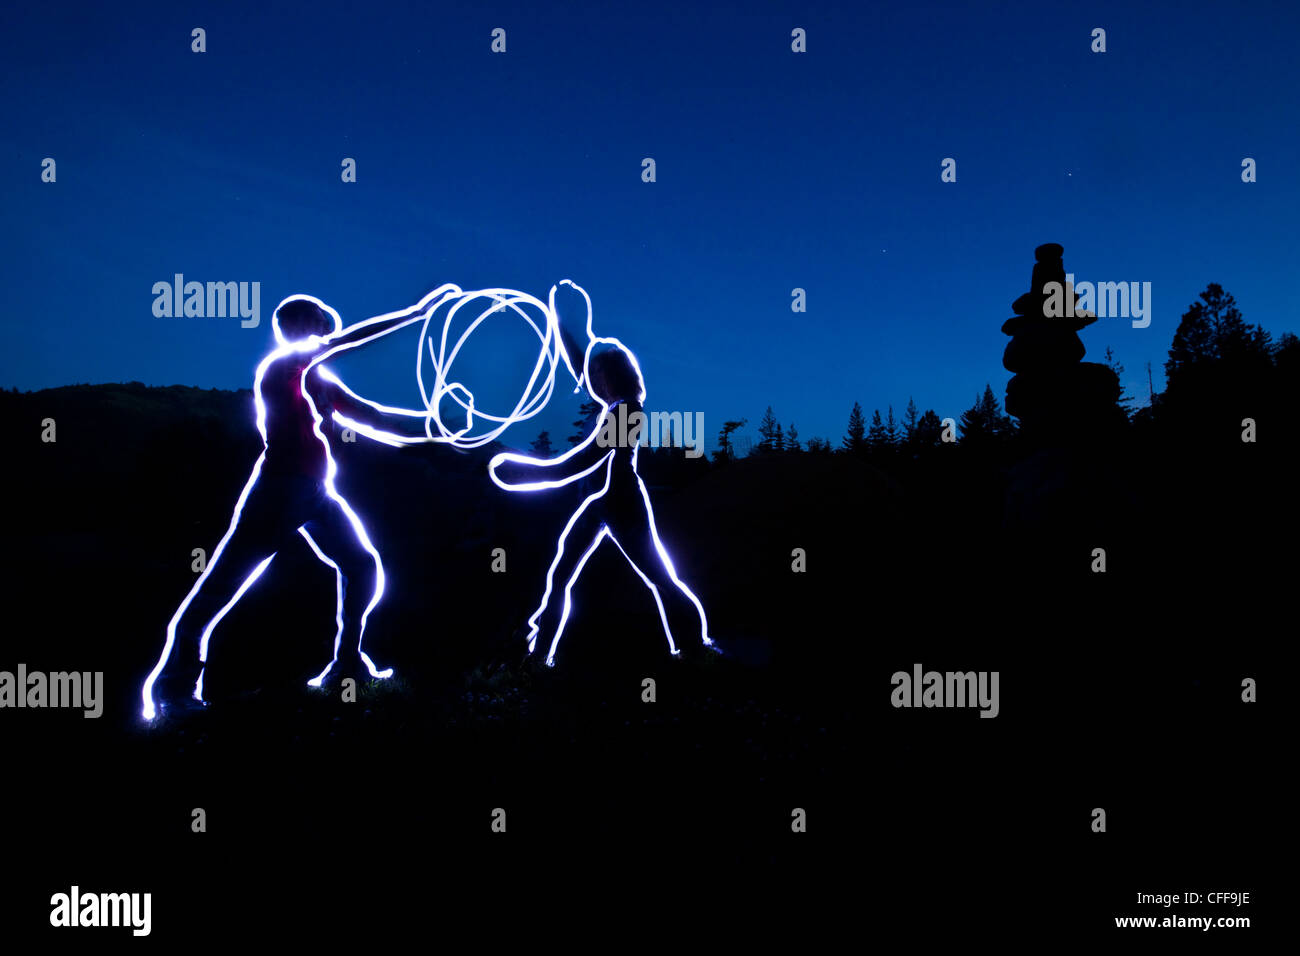 A light painting of two figures holding a ball of light energy at sunset in Idaho. - Stock Image